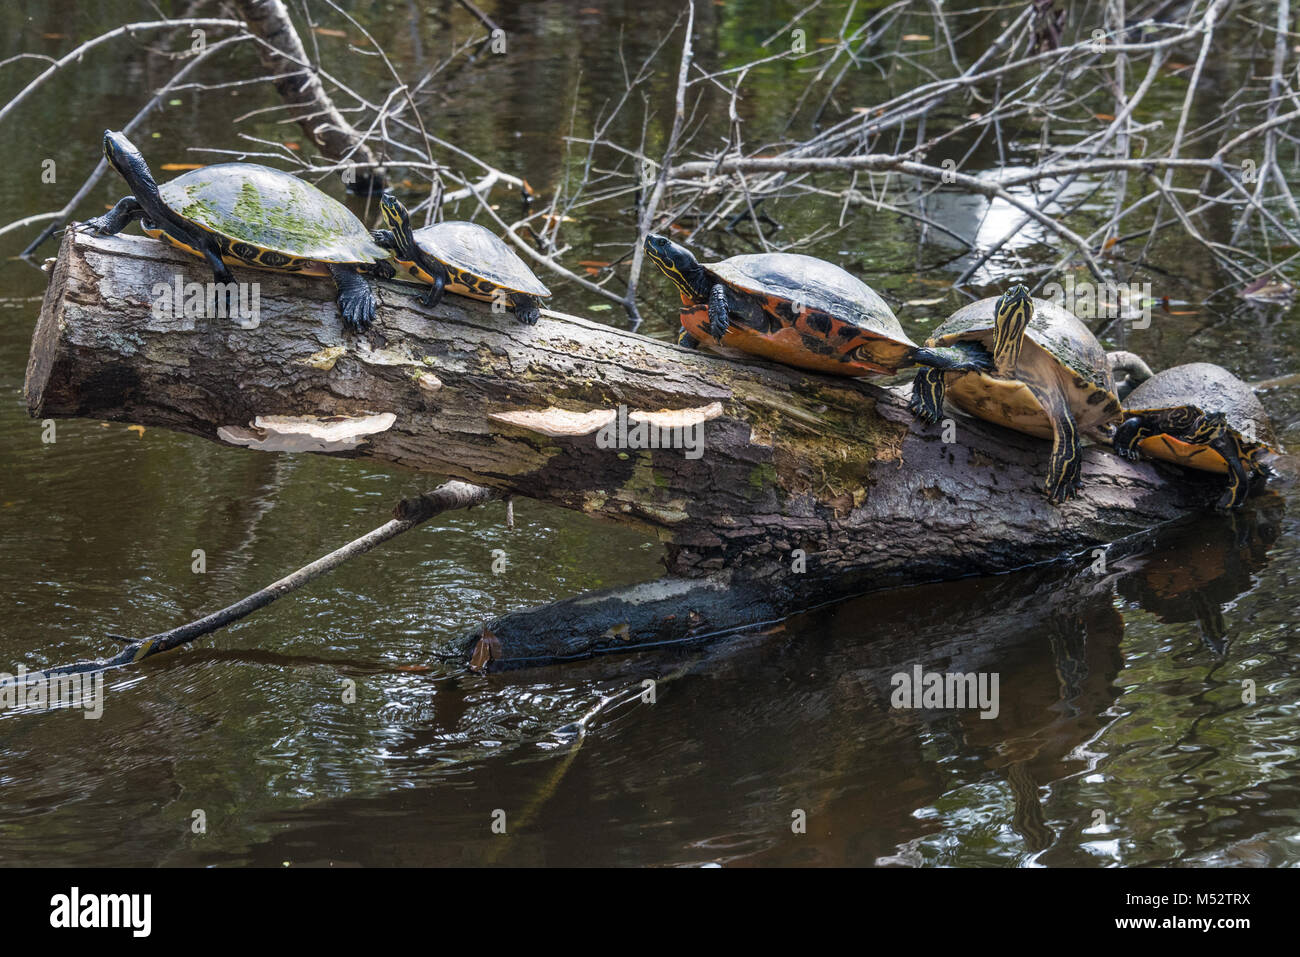 A row of yellow-bellied slider turtles sunning on a log at Ellie Schiller Homosassa Springs Wildlife State Park Stock Photo